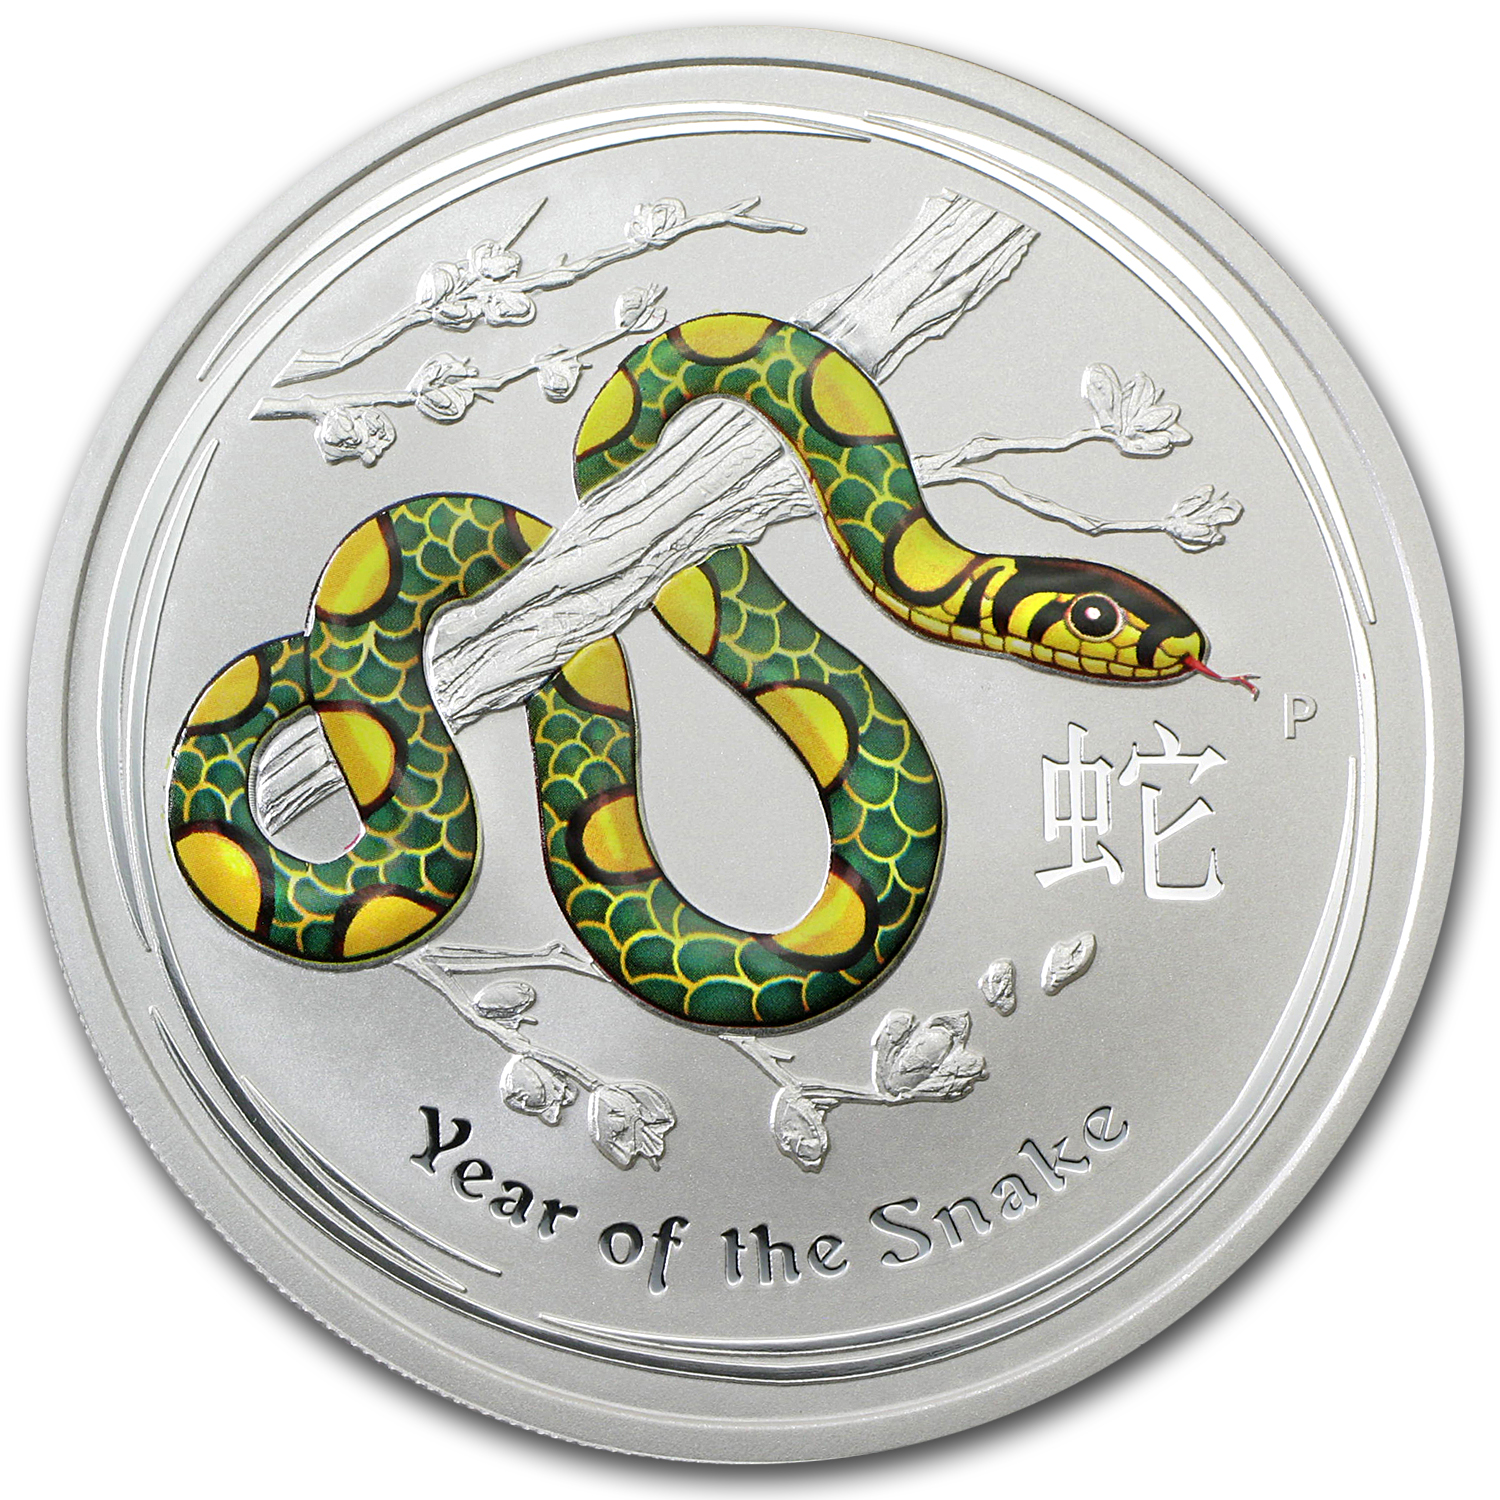 2013 5 oz Silver Australian Year of the Snake BU (Colorized, Box)